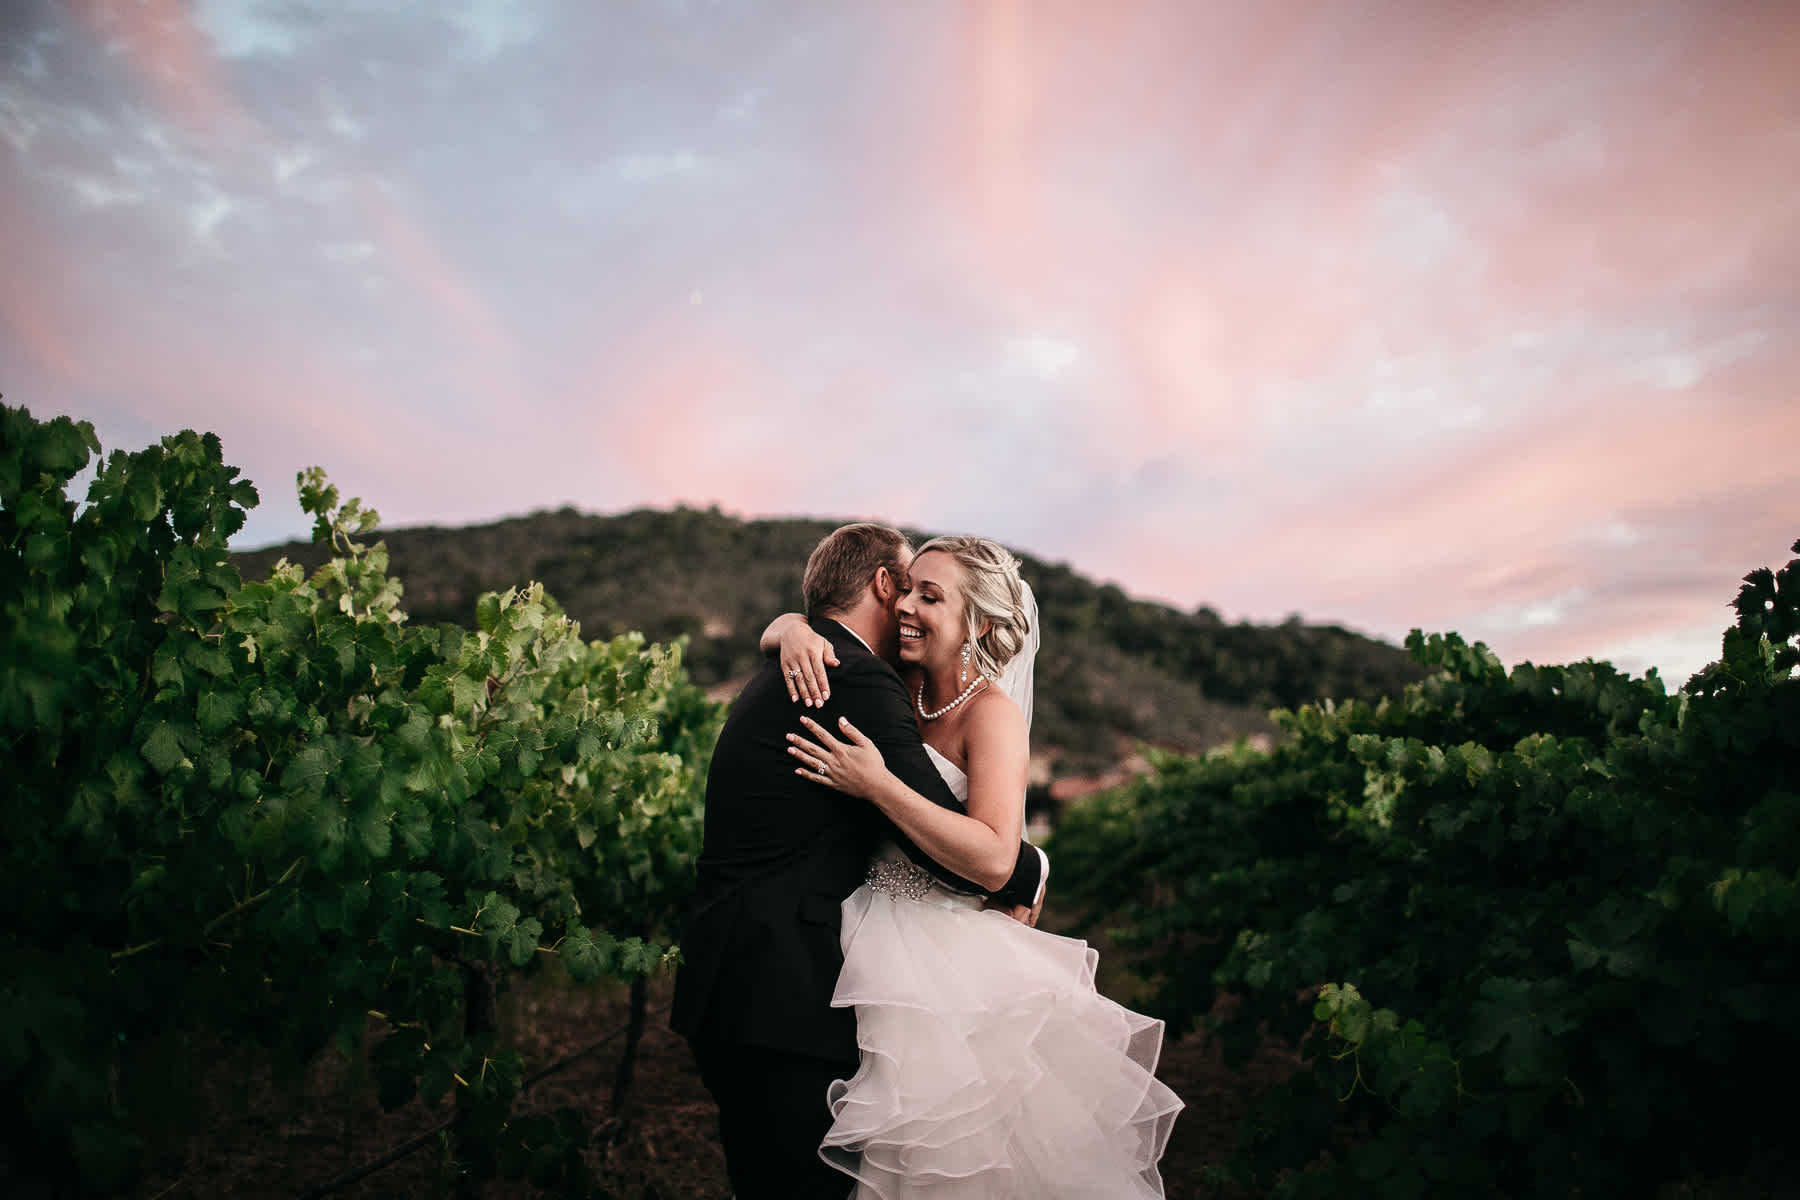 kirigin-cellars-gilroy-summer-sunset-wedding-92